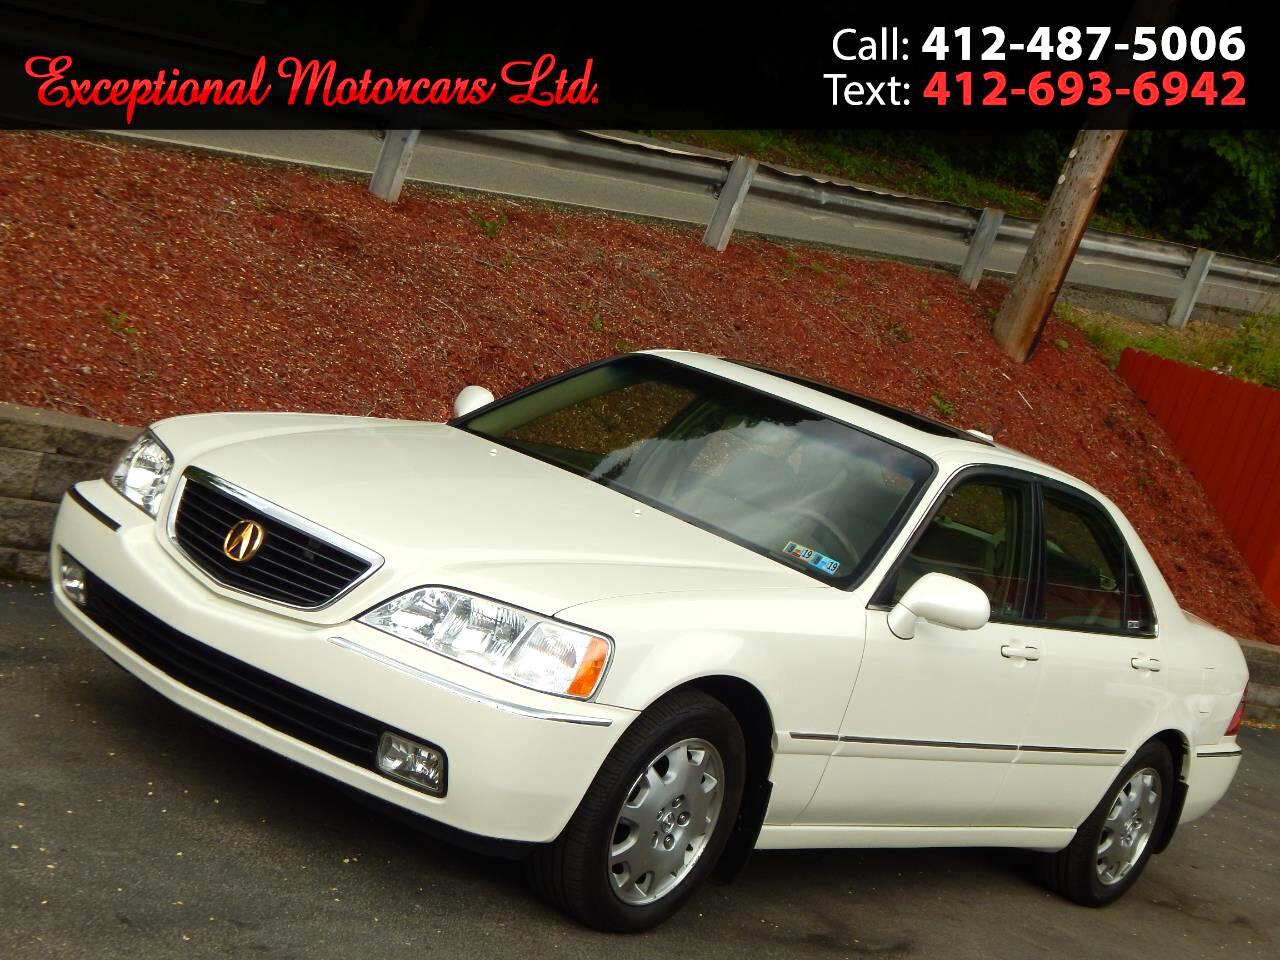 2004 Acura RL 4dr Sdn w/Navigation System